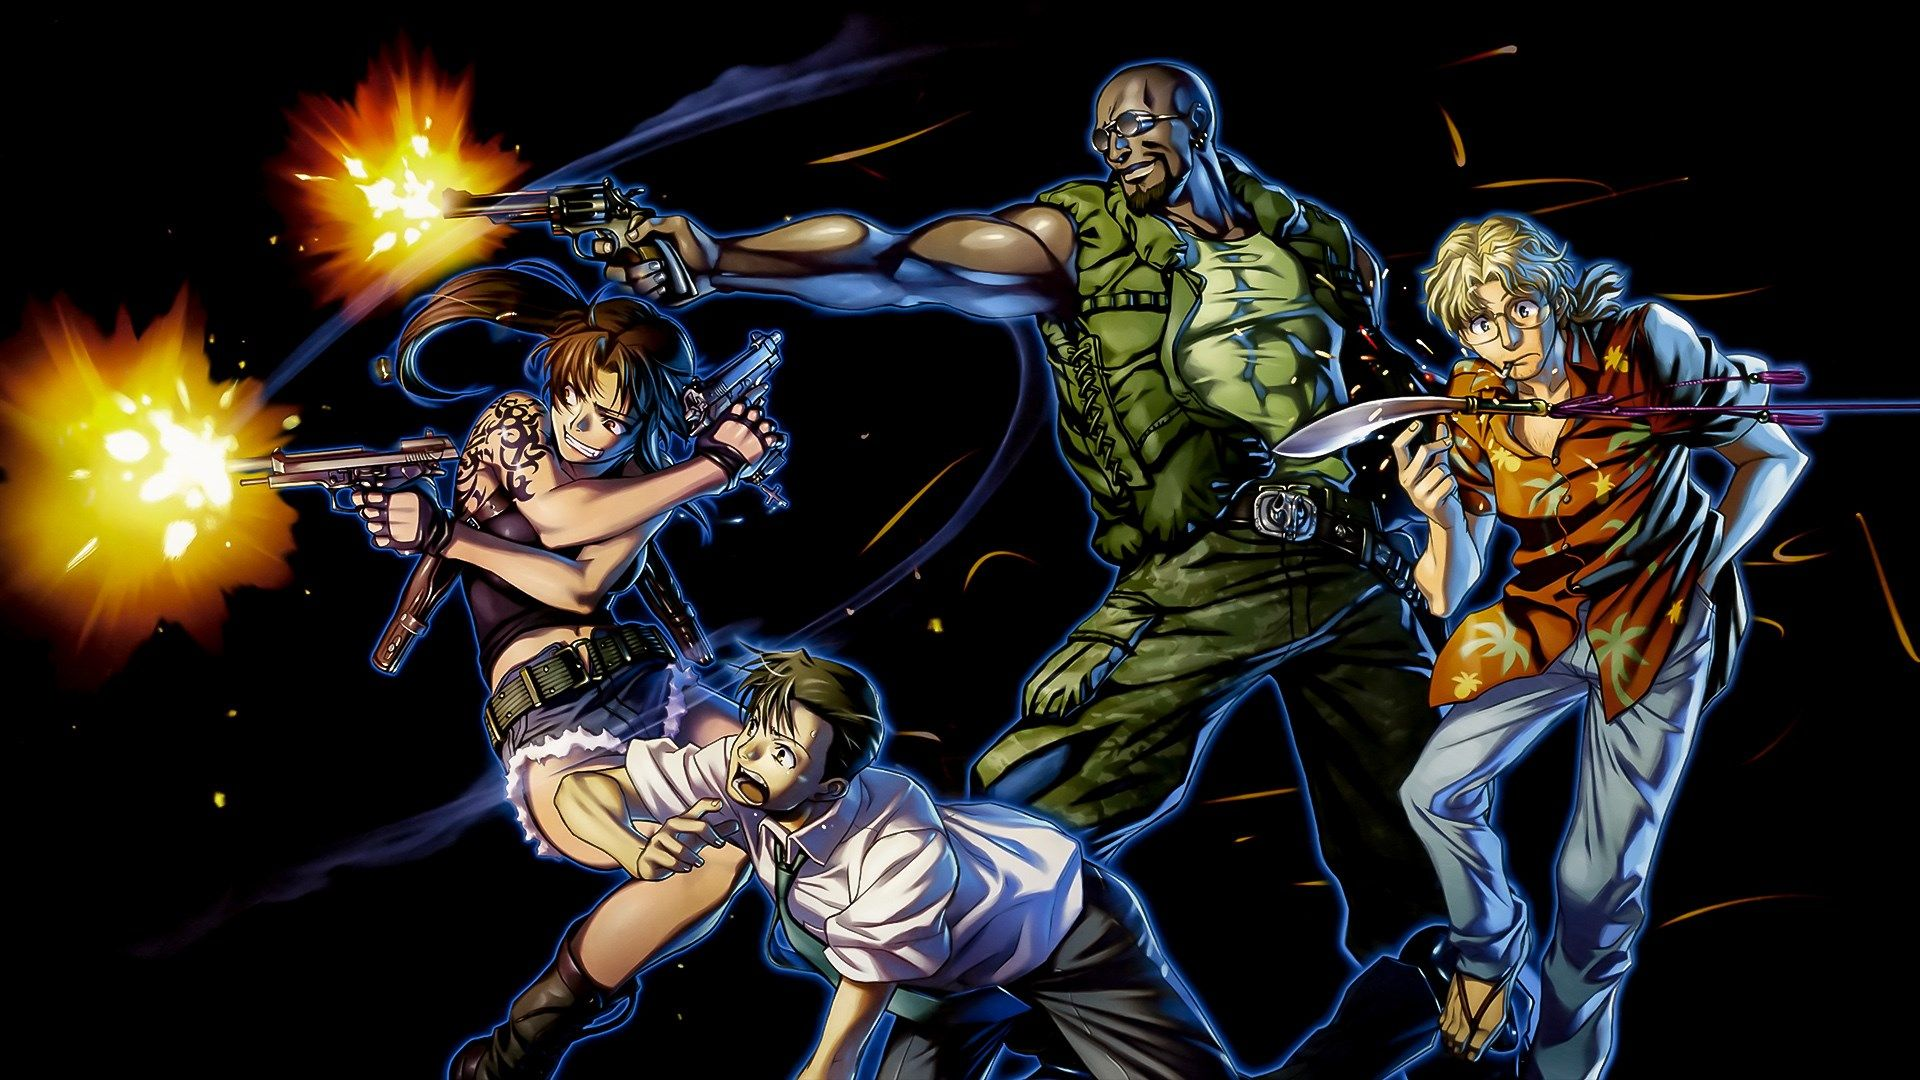 Black Lagoon Wallpaper Background Hd Oswald Brian 1920x1080